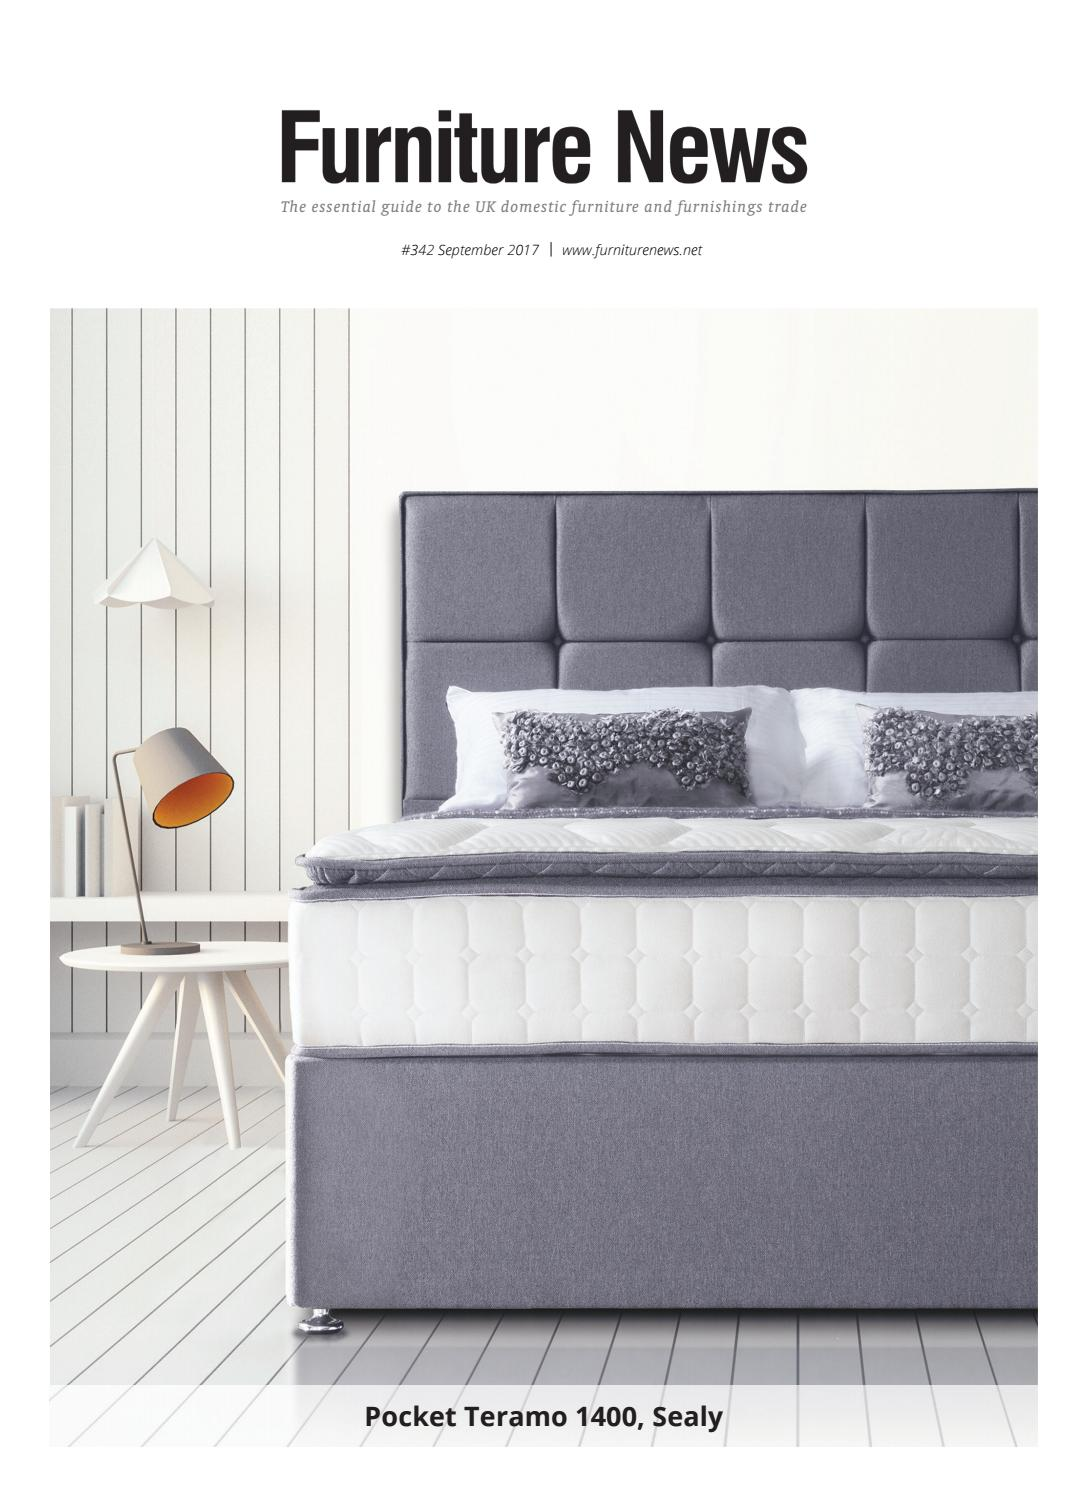 english sofa company manchester best budget sleeper furniture news #342 by gearing media group ltd - issuu